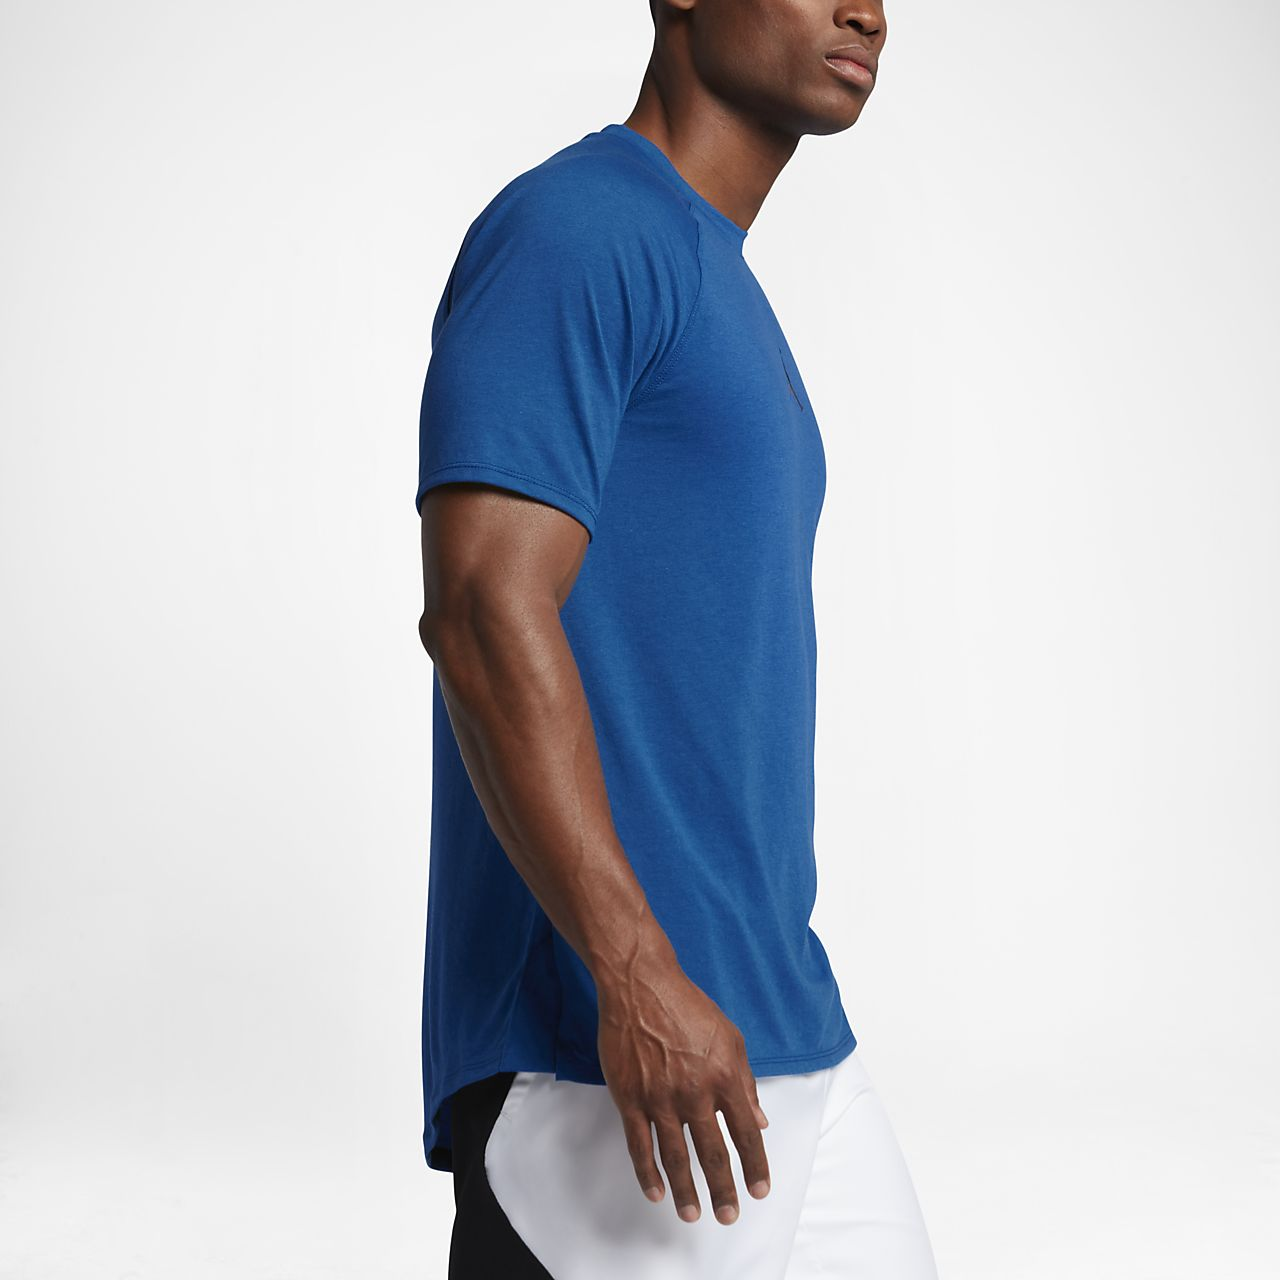 c80d47e922a202 Jordan 23 Tech SE Men s Short-Sleeve Training Top. Nike.com MY